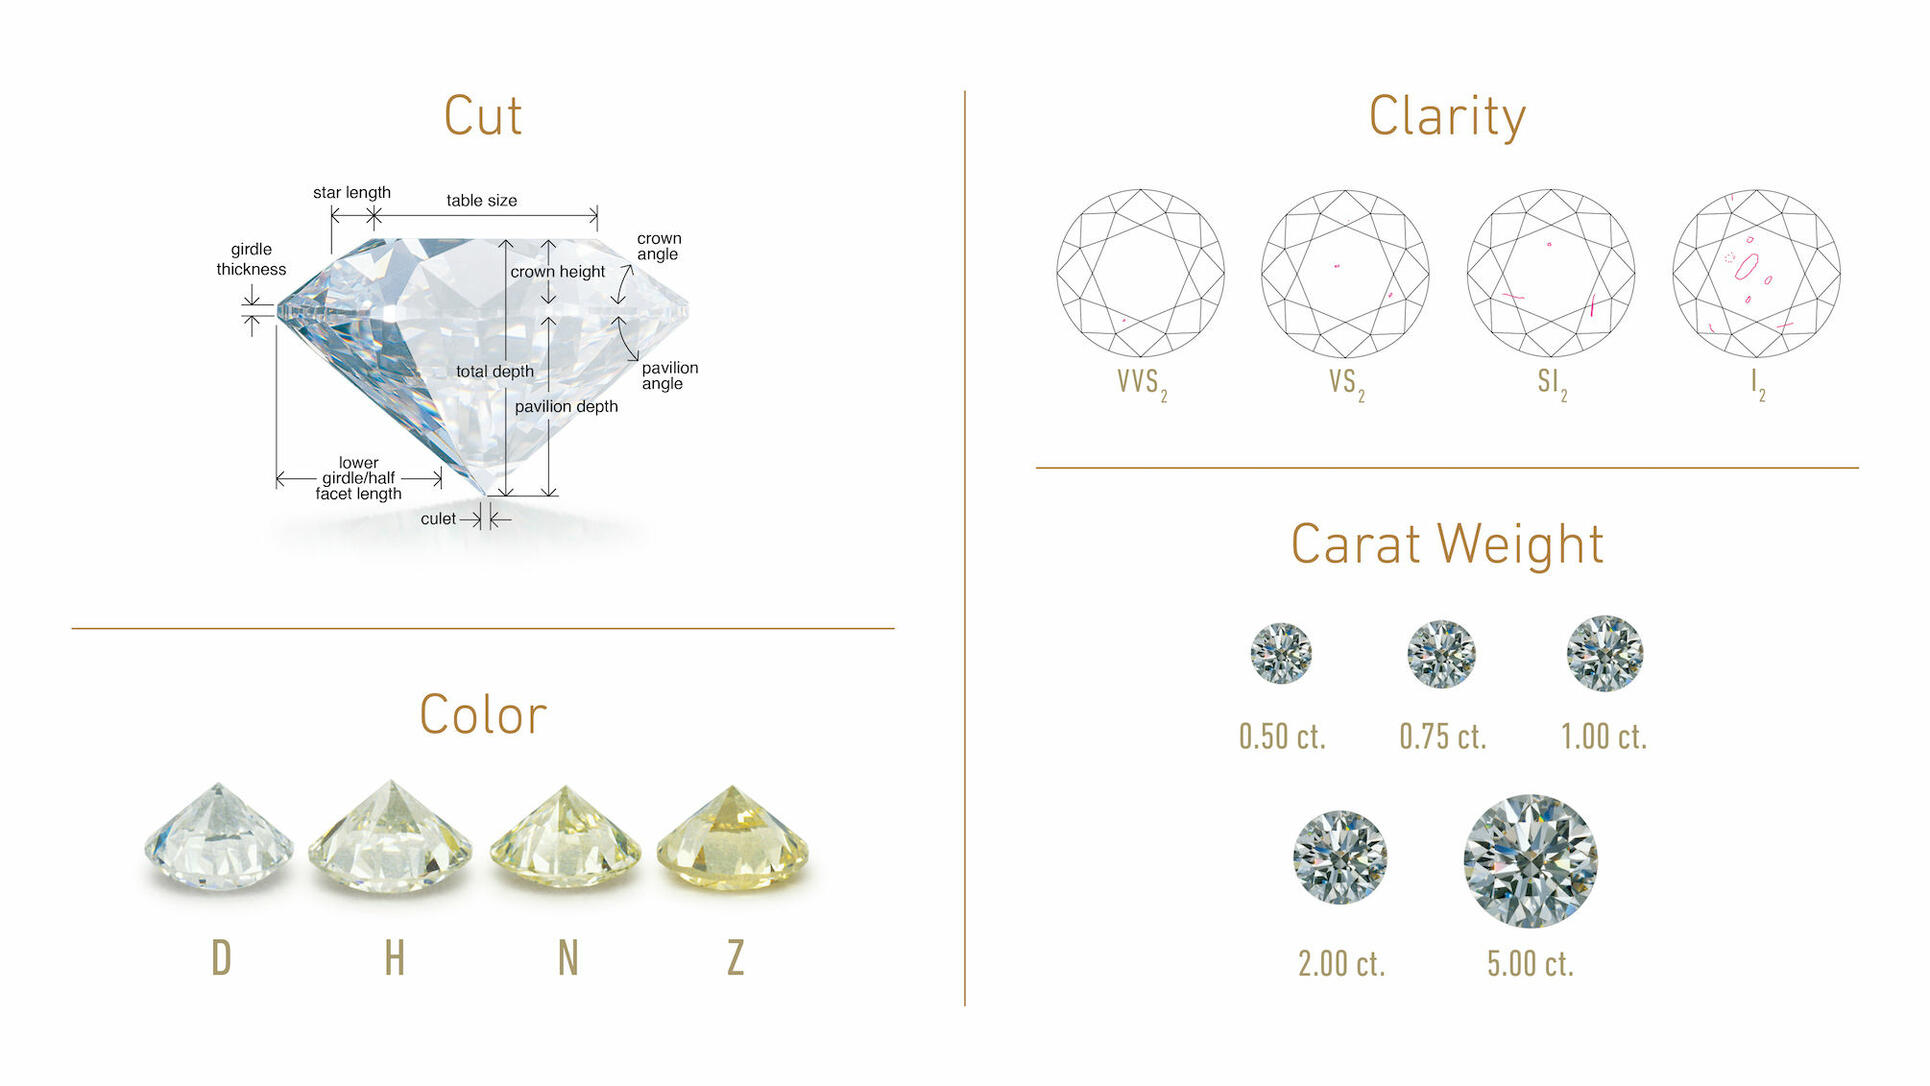 Graphic of GIA's 4C's of diamond grading, cut, clarity, color, and carat weight